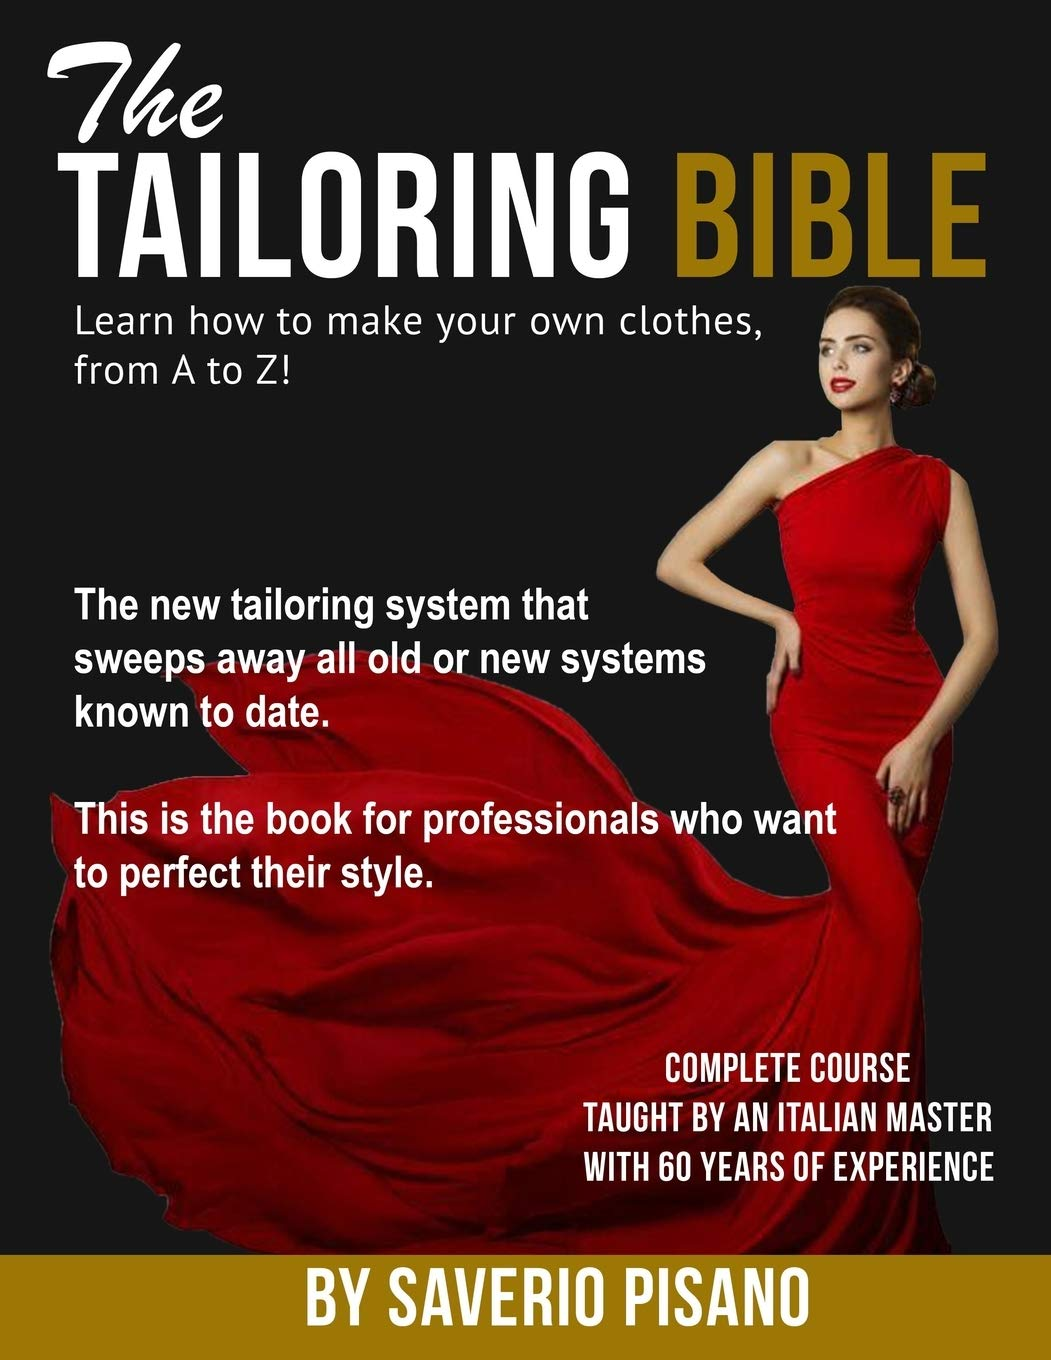 The Tailoring Bible Learn How To Make Your Own Clothes From A To Z Complete Course Taught By An Italian Master With 60 Years Of Experience Become A Fashion